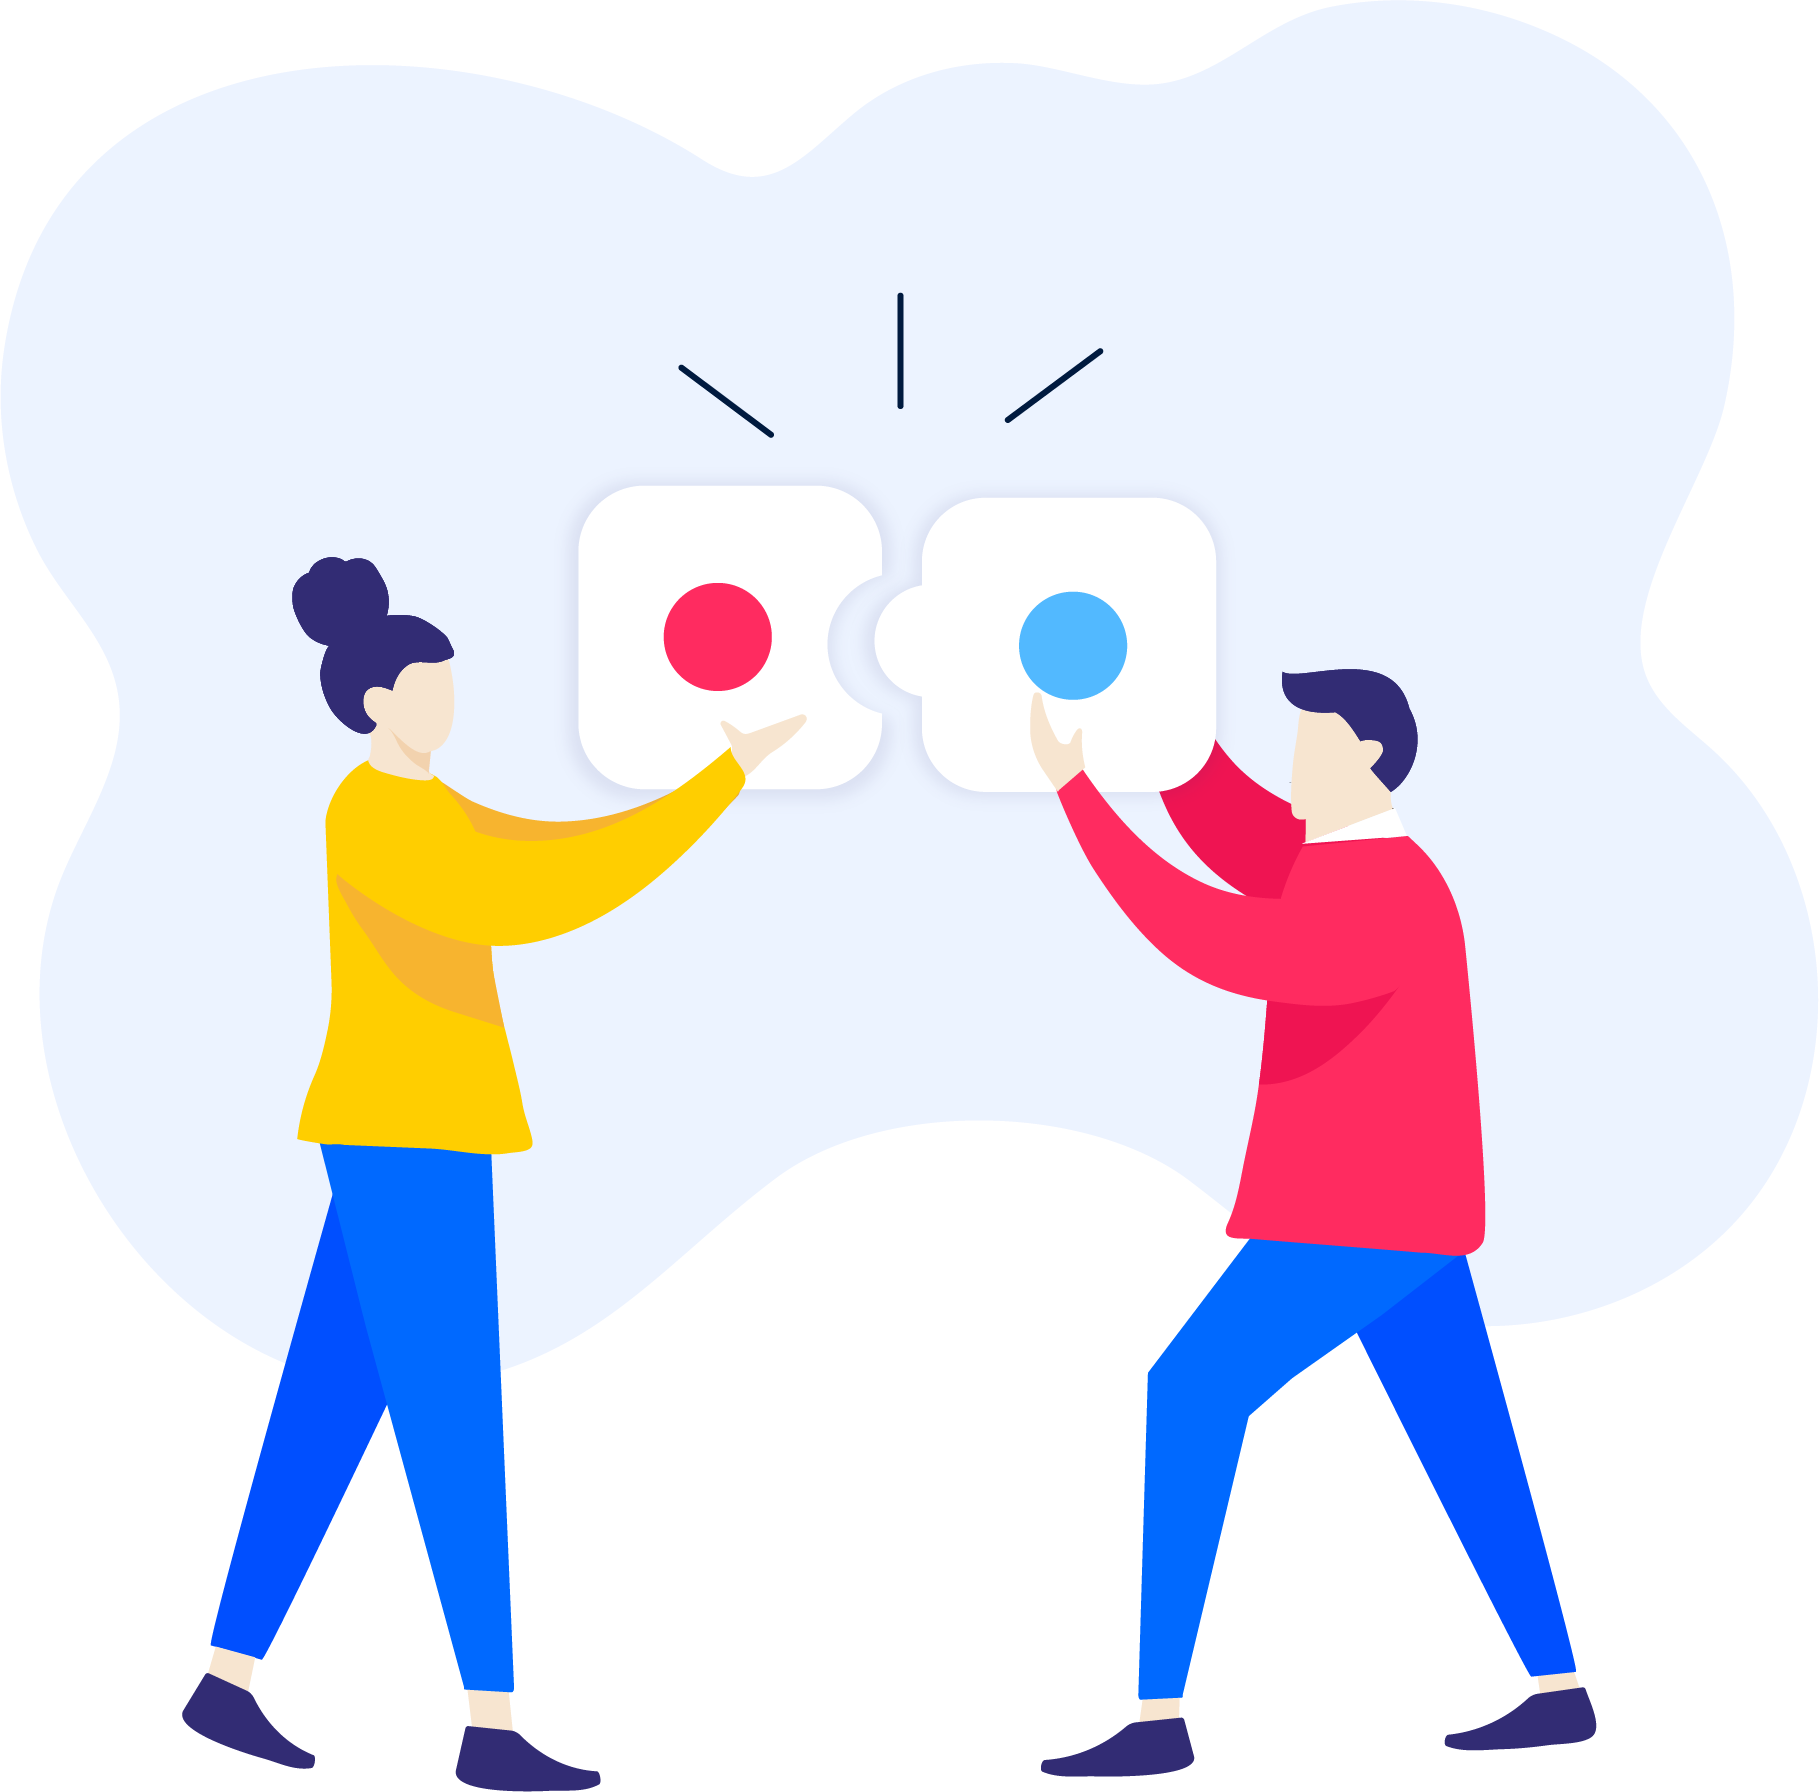 Get a personalized quote of inSided's community platform for B2B and SaaS